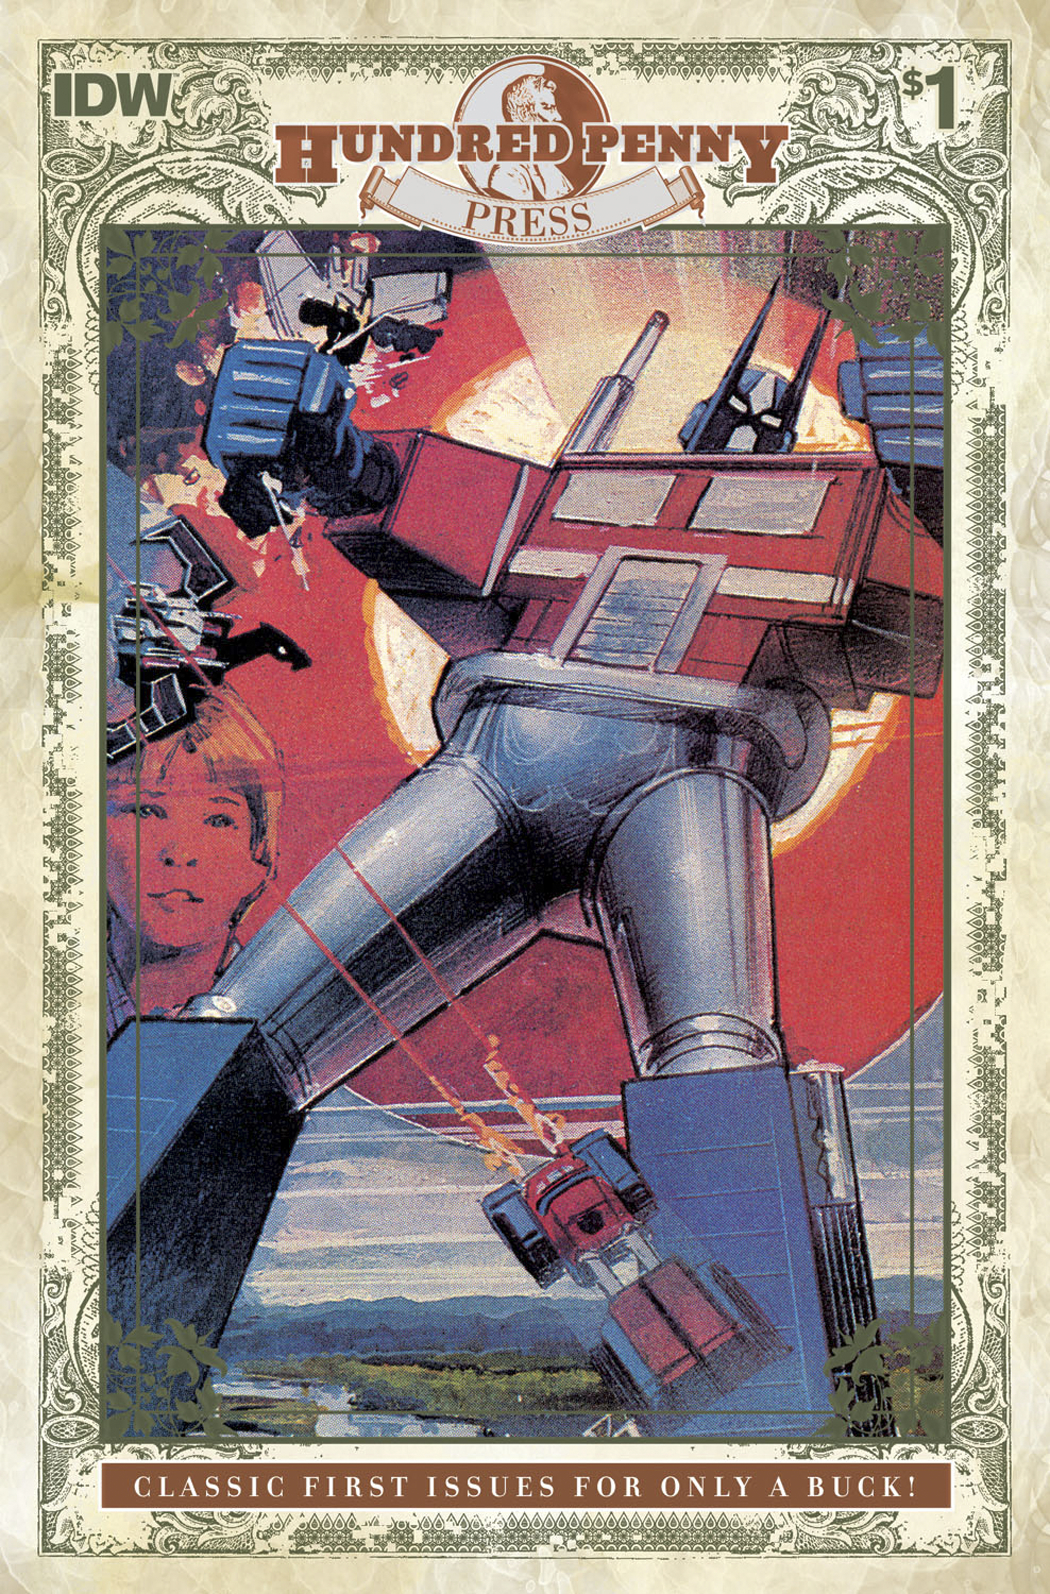 TRANSFORMERS 1984 #1 100 PENNY PRESS ED